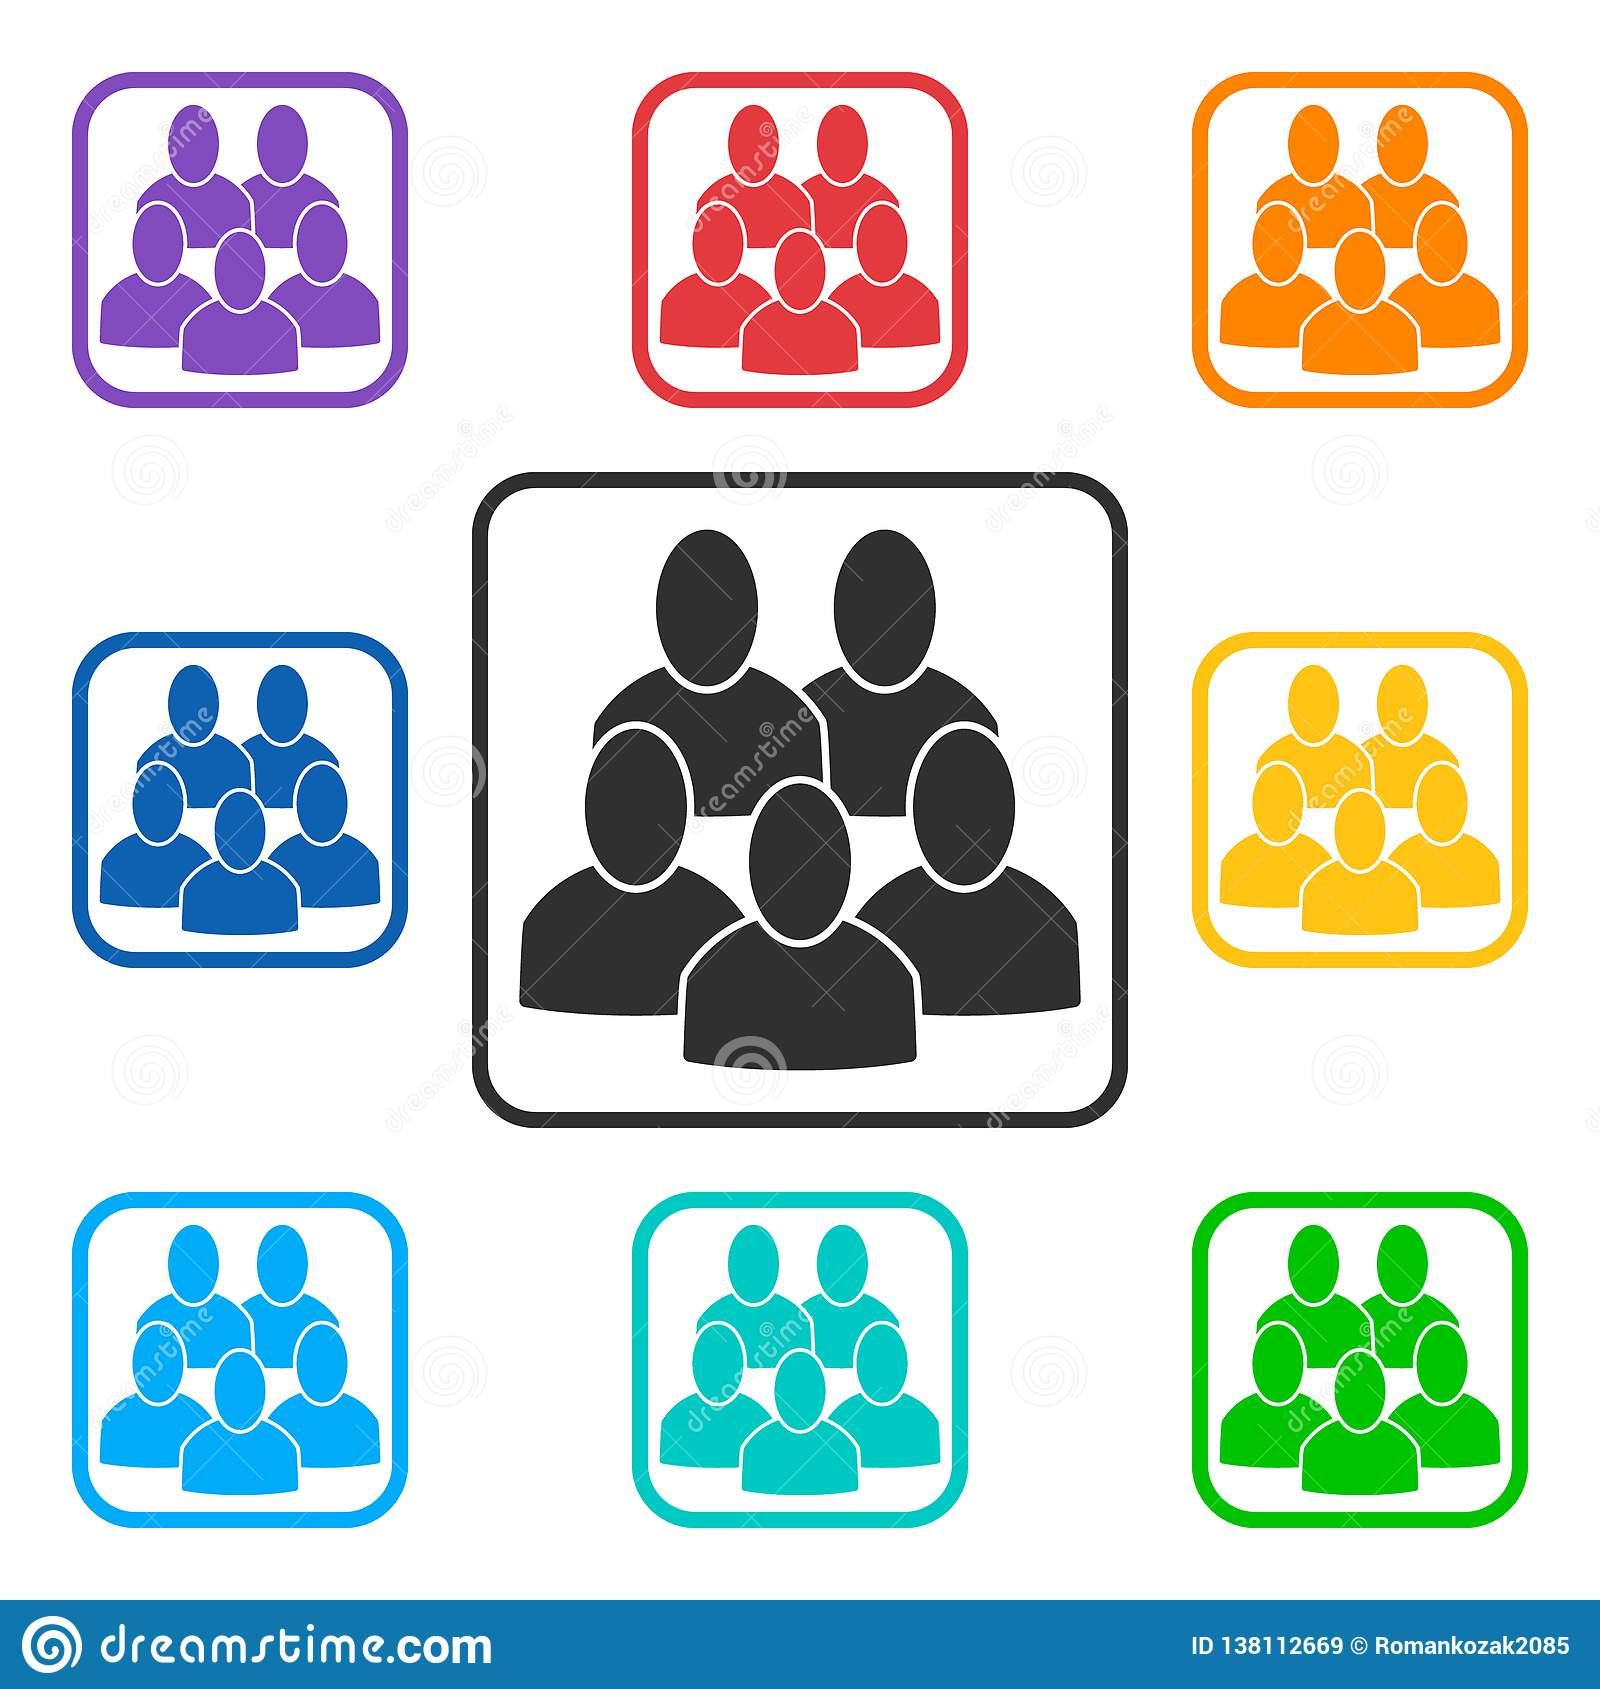 Set of group square icons with 5 peoples